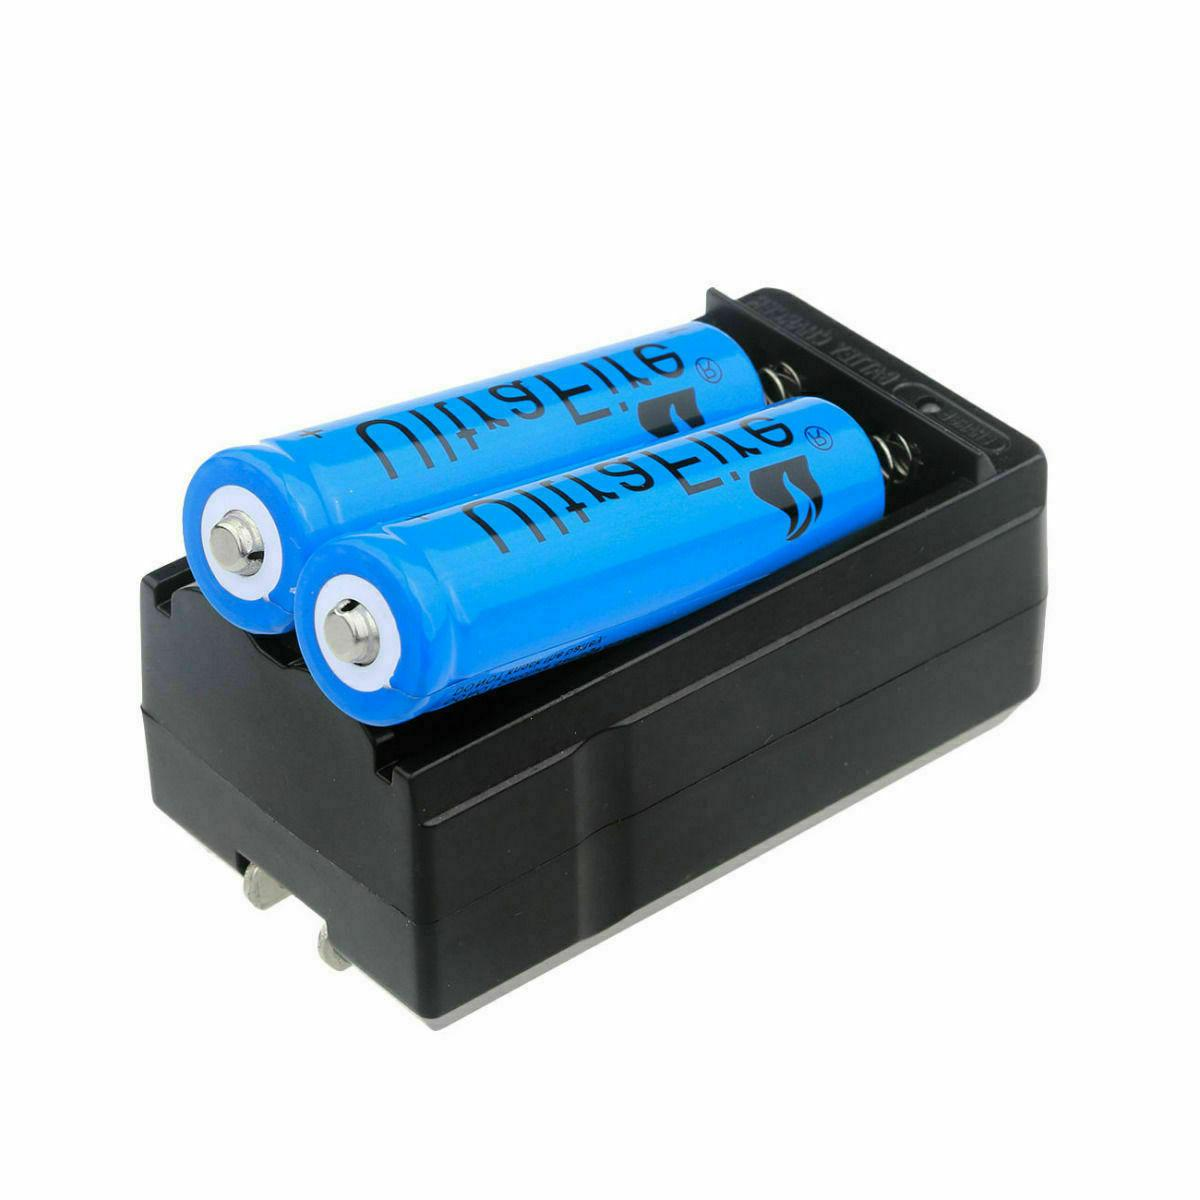 18650 Battery Ultra 5000mAh Fire For LED Lot